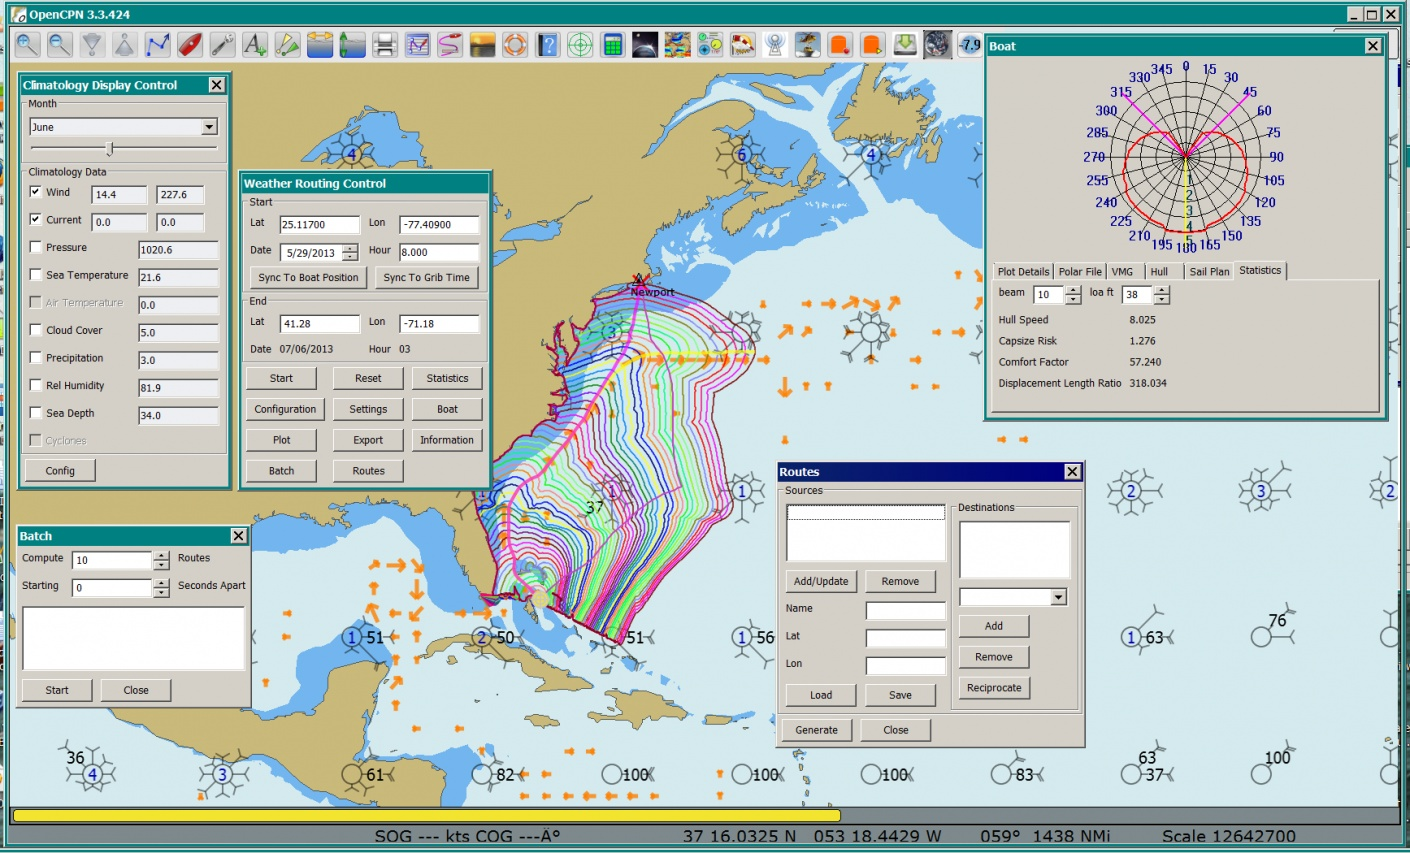 Click image for larger version  Name:Opencpn-Windows-Wx-Rte-Climatology-June-Nassau-Newport-Follows-Gulf-Stream.jpg Views:106 Size:426.6 KB ID:61266